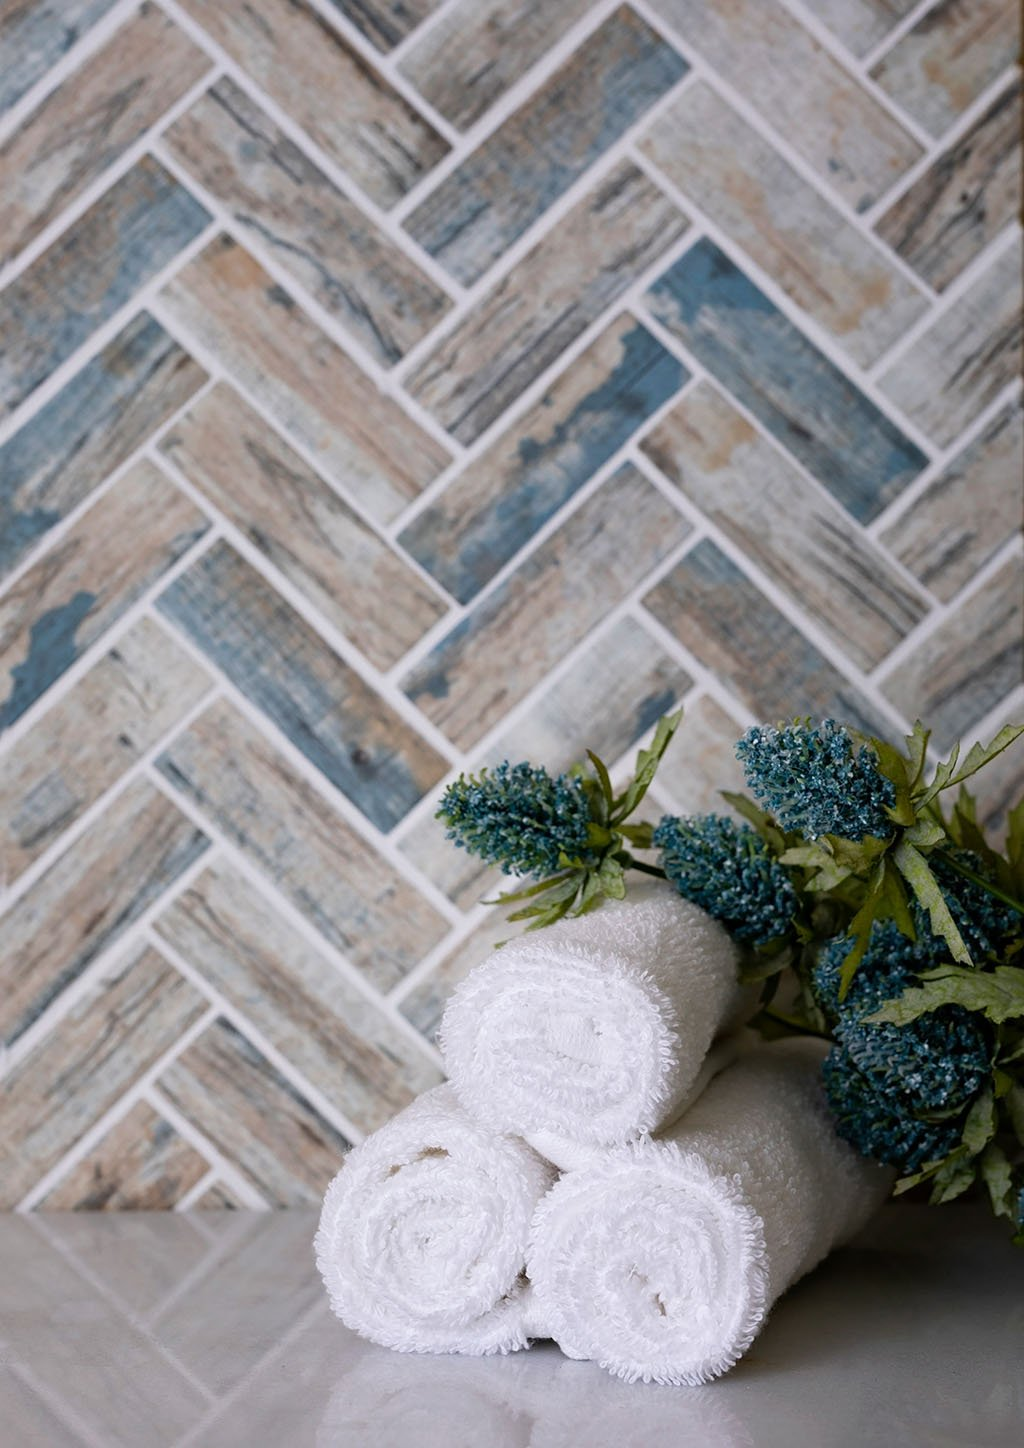 Recycled Glass Herringbone Mosaic In Blue Wood Color Is where Beach Style meets Rustic for Coastal Farmhouse Decor